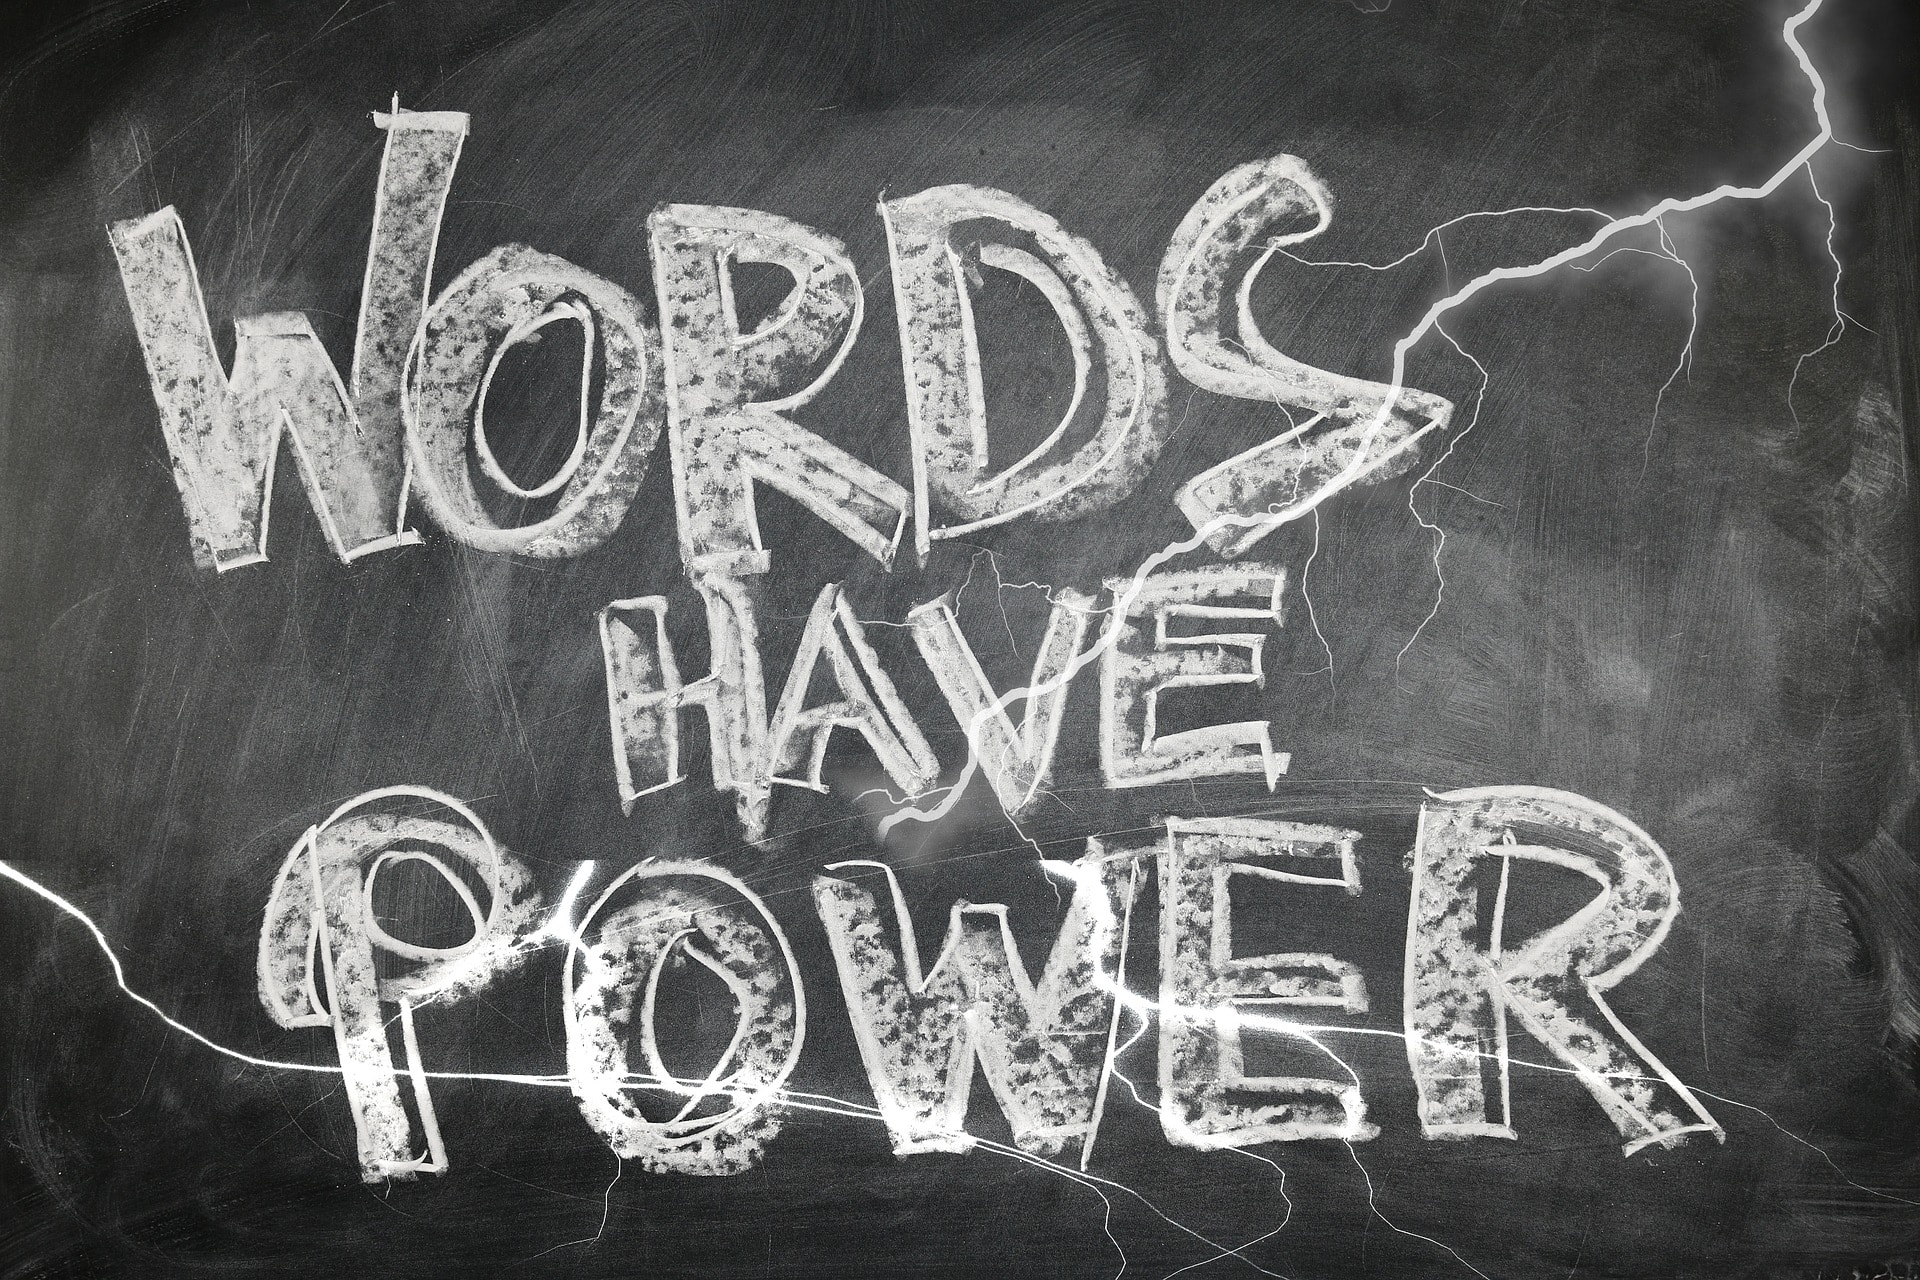 Verbal integrity: Words have power